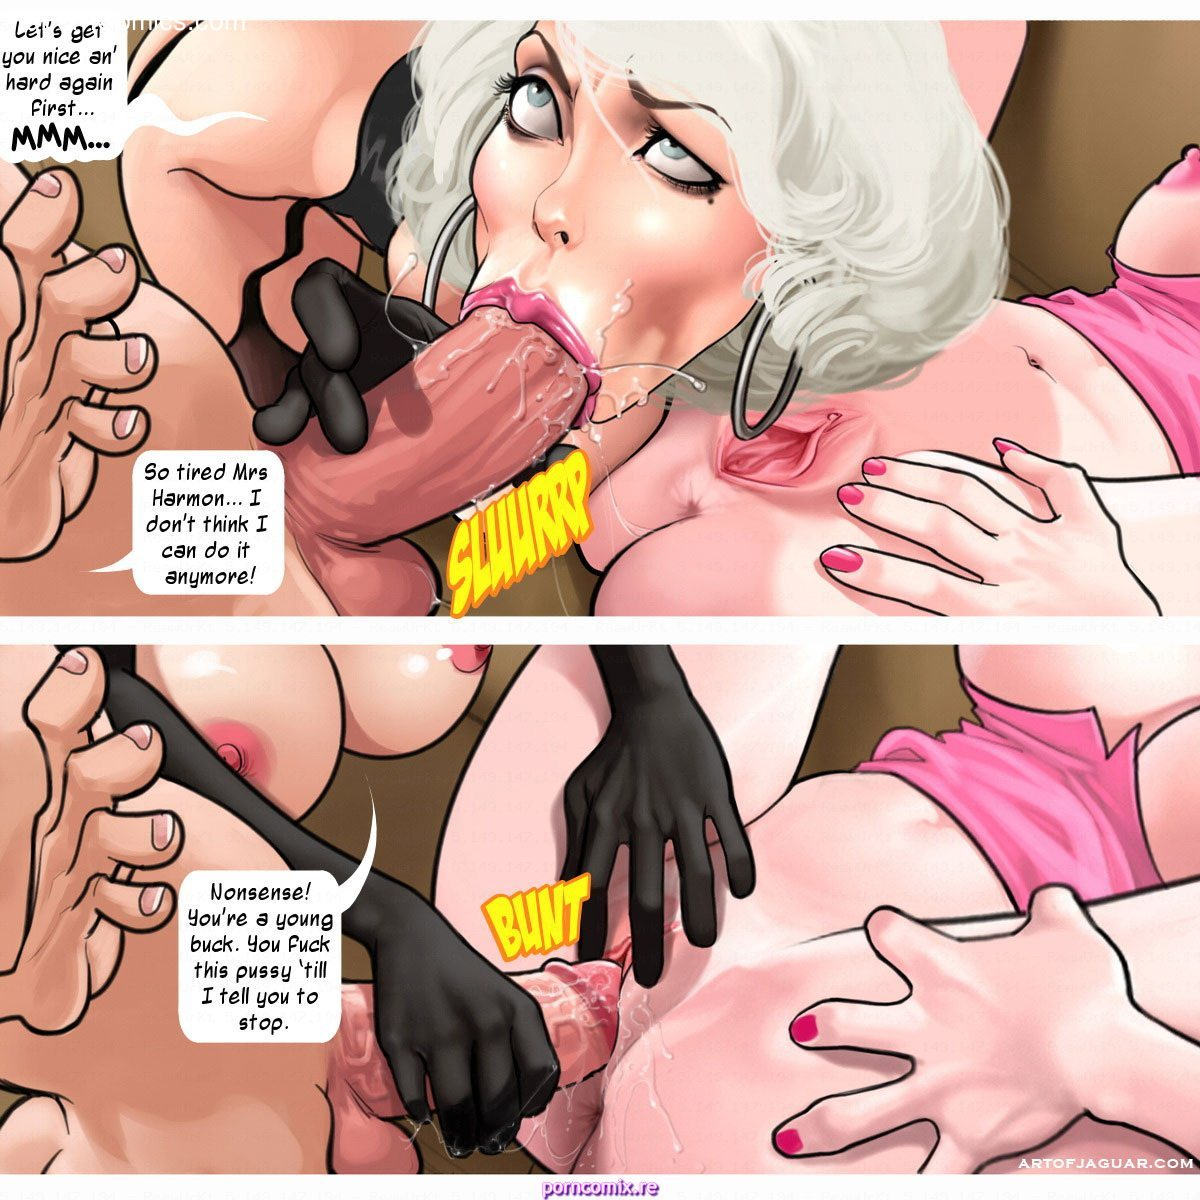 Bangin Buddies 2 - Bethany and Mrs Harmon22 free sex comic